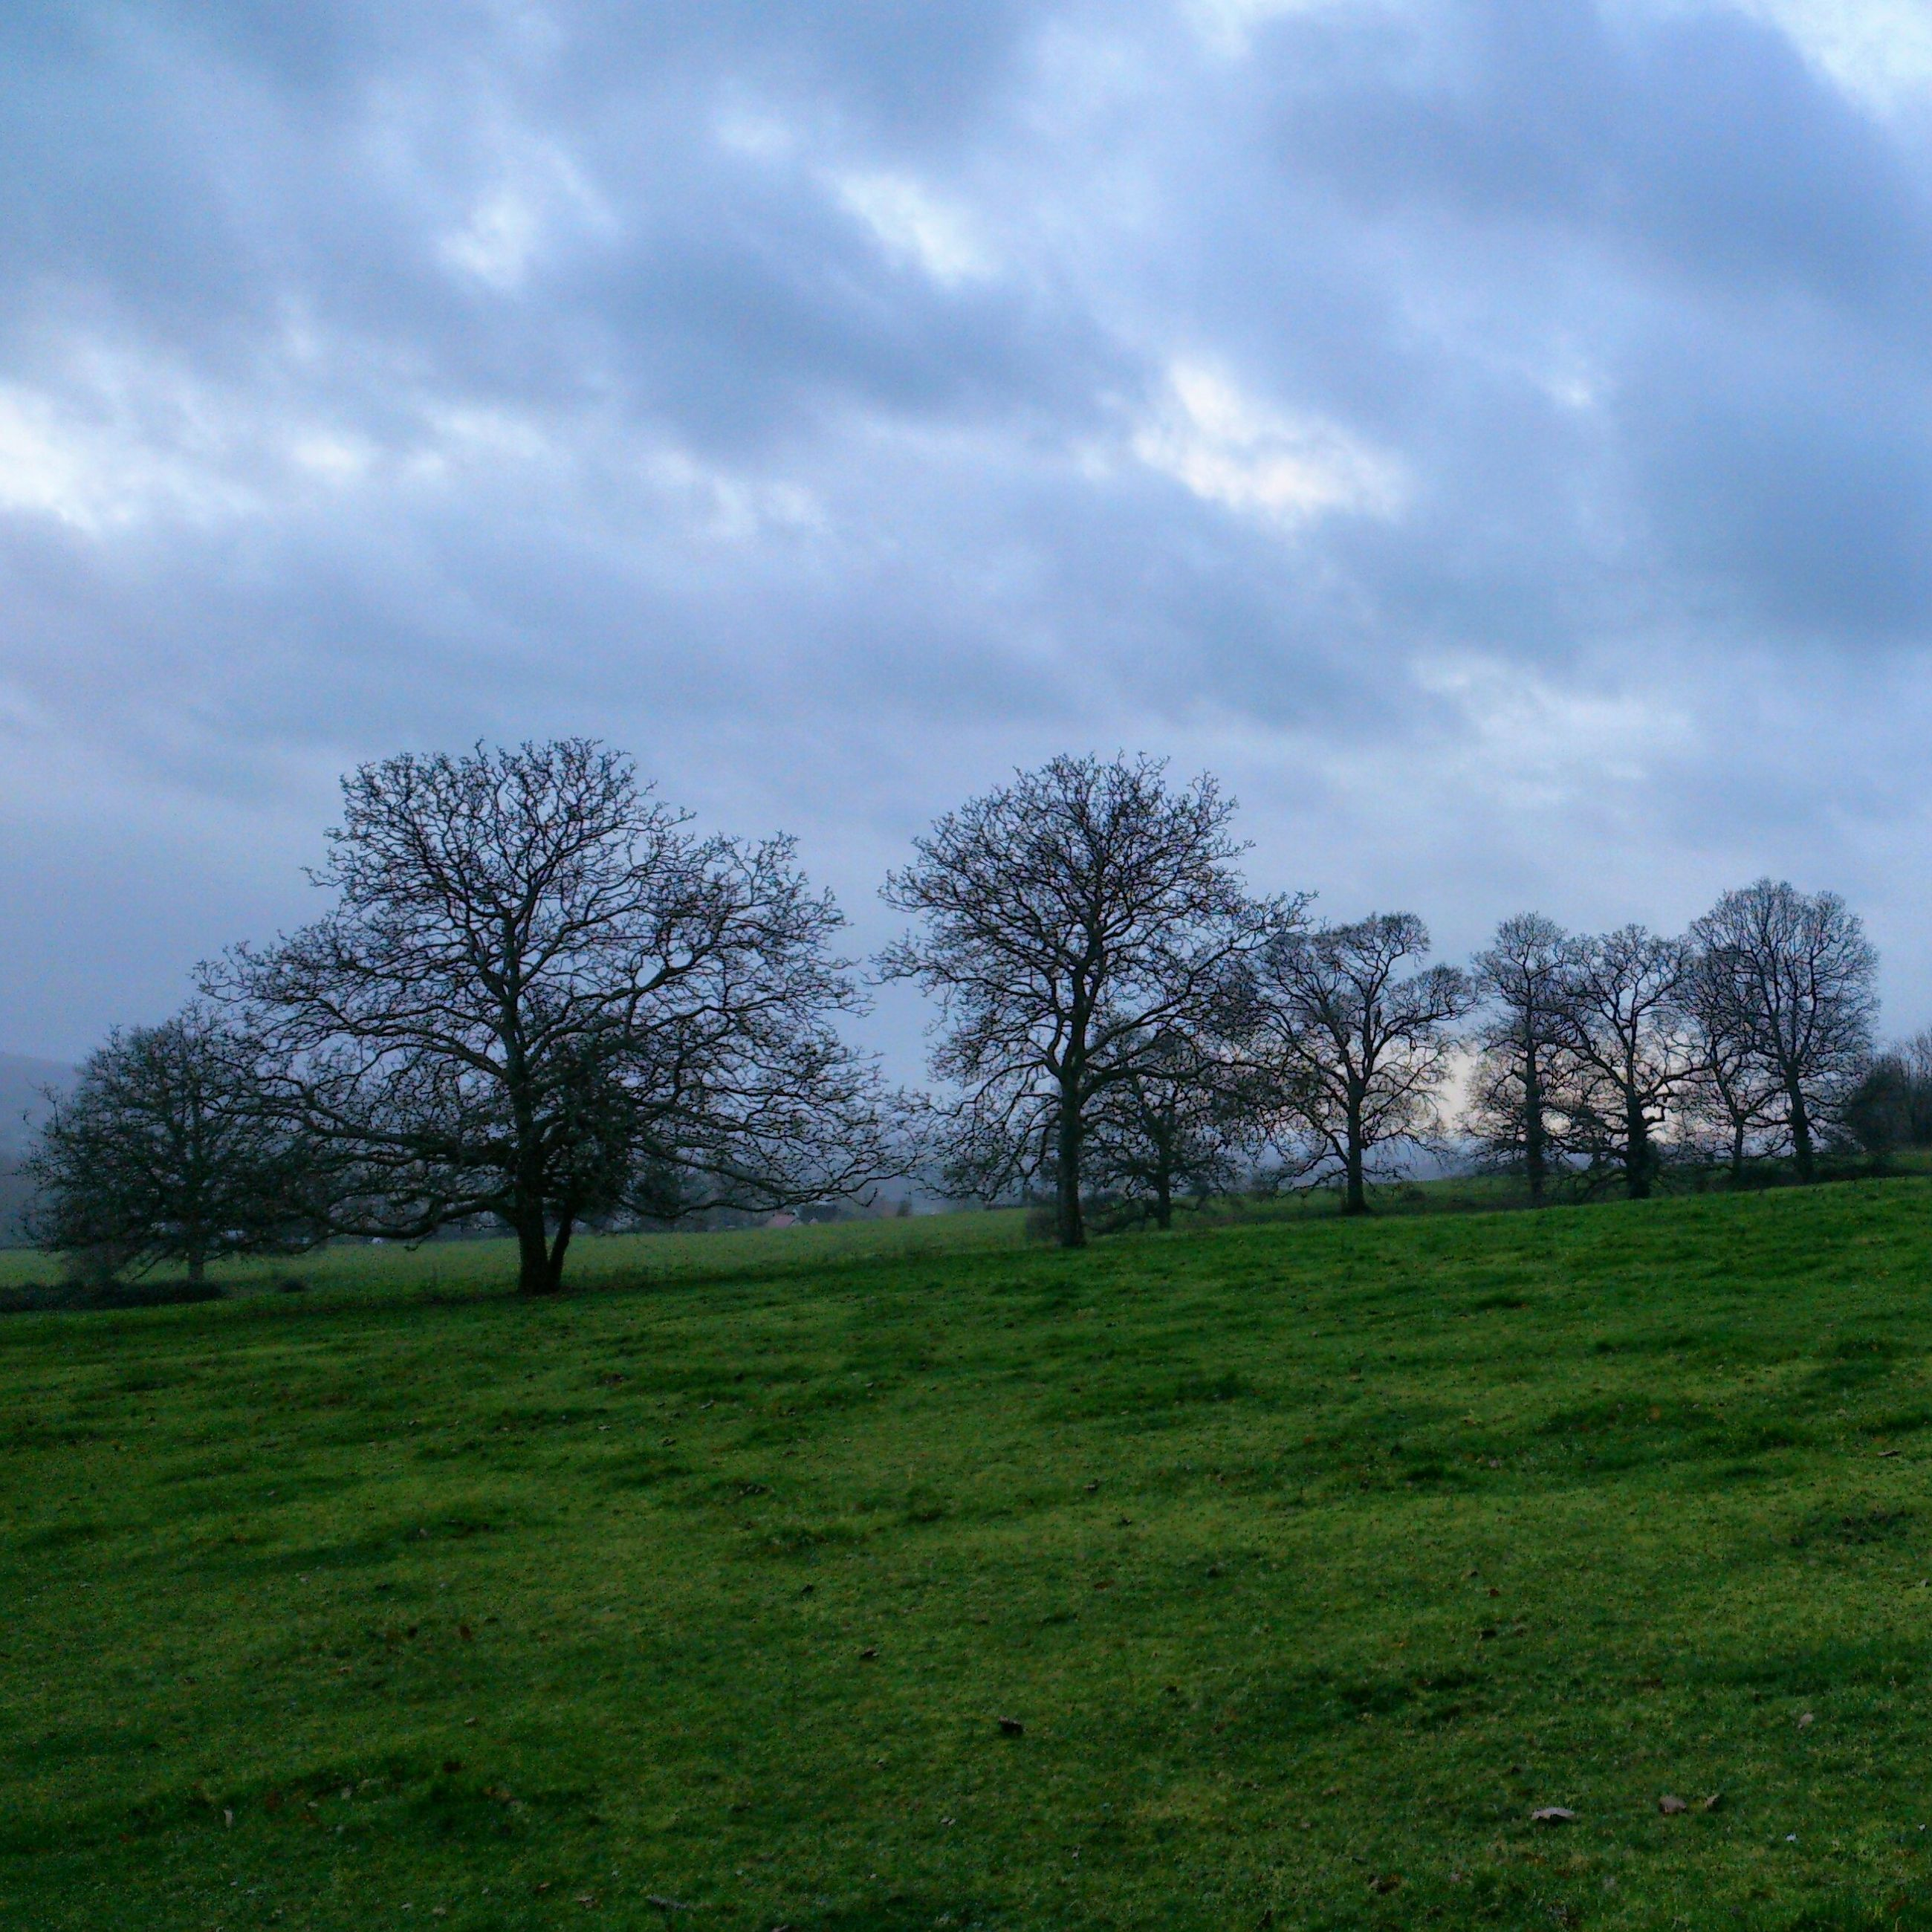 grass, tree, sky, tranquility, field, bare tree, tranquil scene, landscape, grassy, cloud - sky, scenics, beauty in nature, nature, green color, cloudy, branch, cloud, growth, non-urban scene, tree trunk